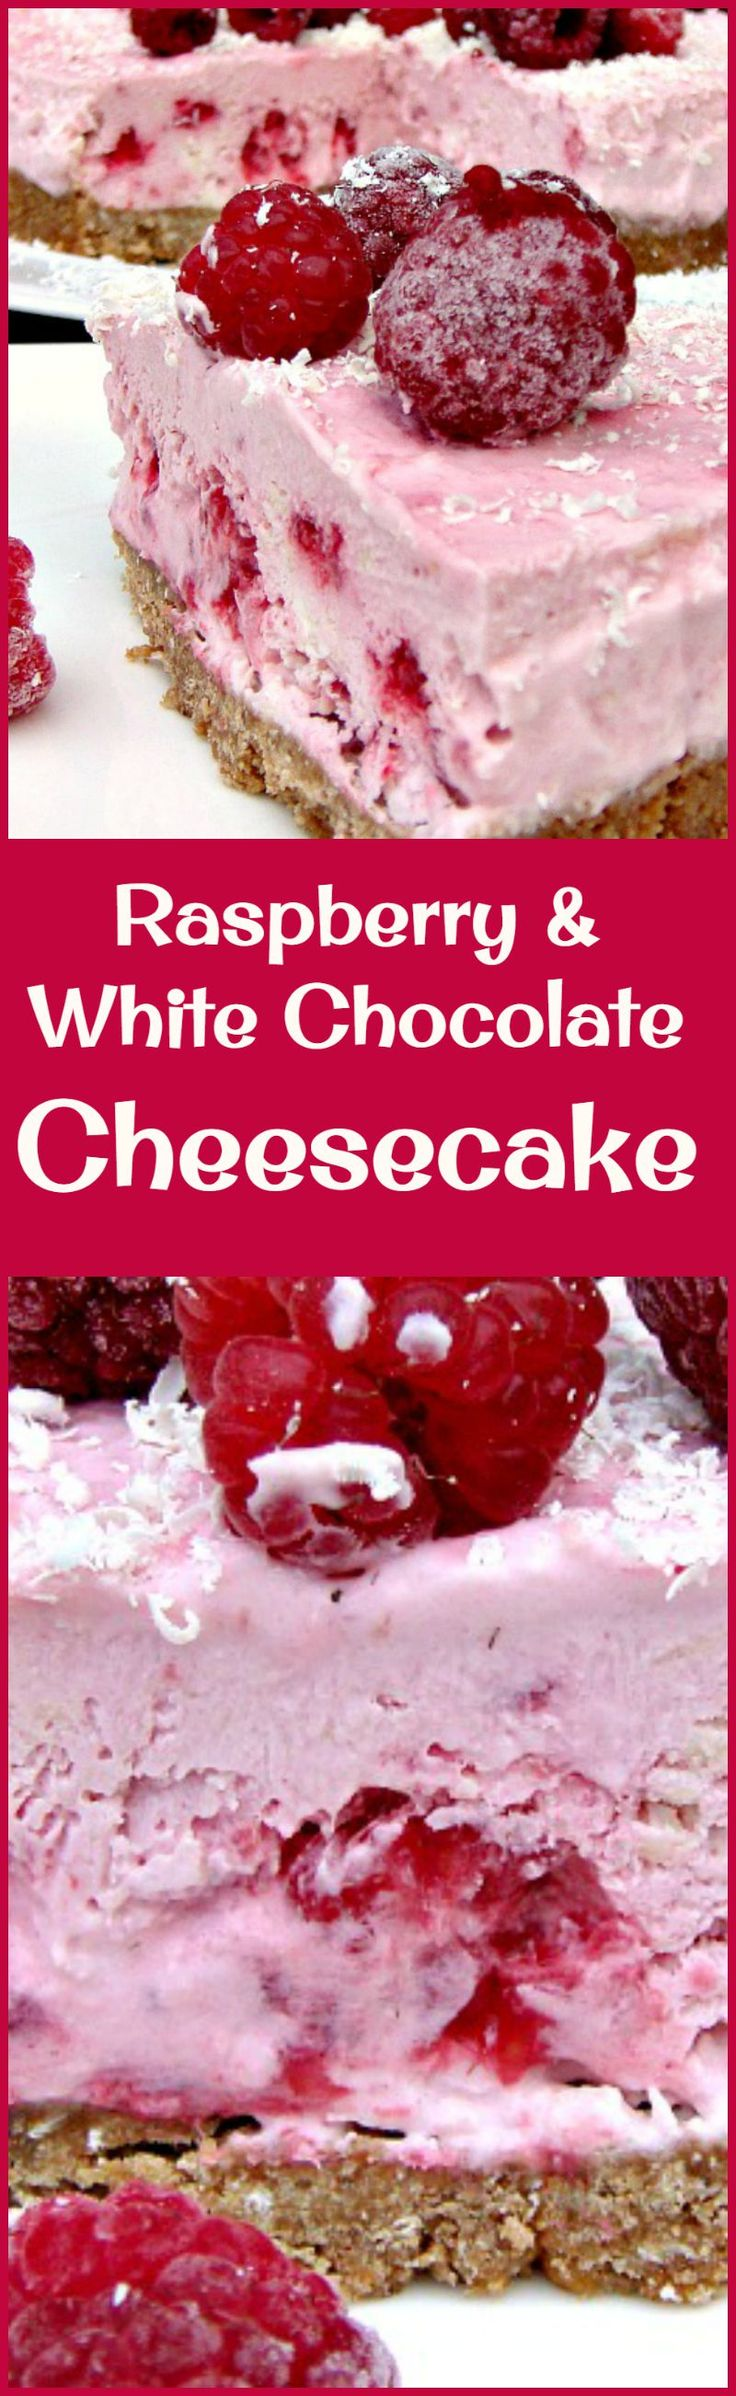 Raspberry & White Chocolate Cheesecake - A refreshing No Bake Cheesecake with a gentle hint of white chocolate. Really delicious!You can eat this Semi Frozen or simply chilled. Both ways are nice!